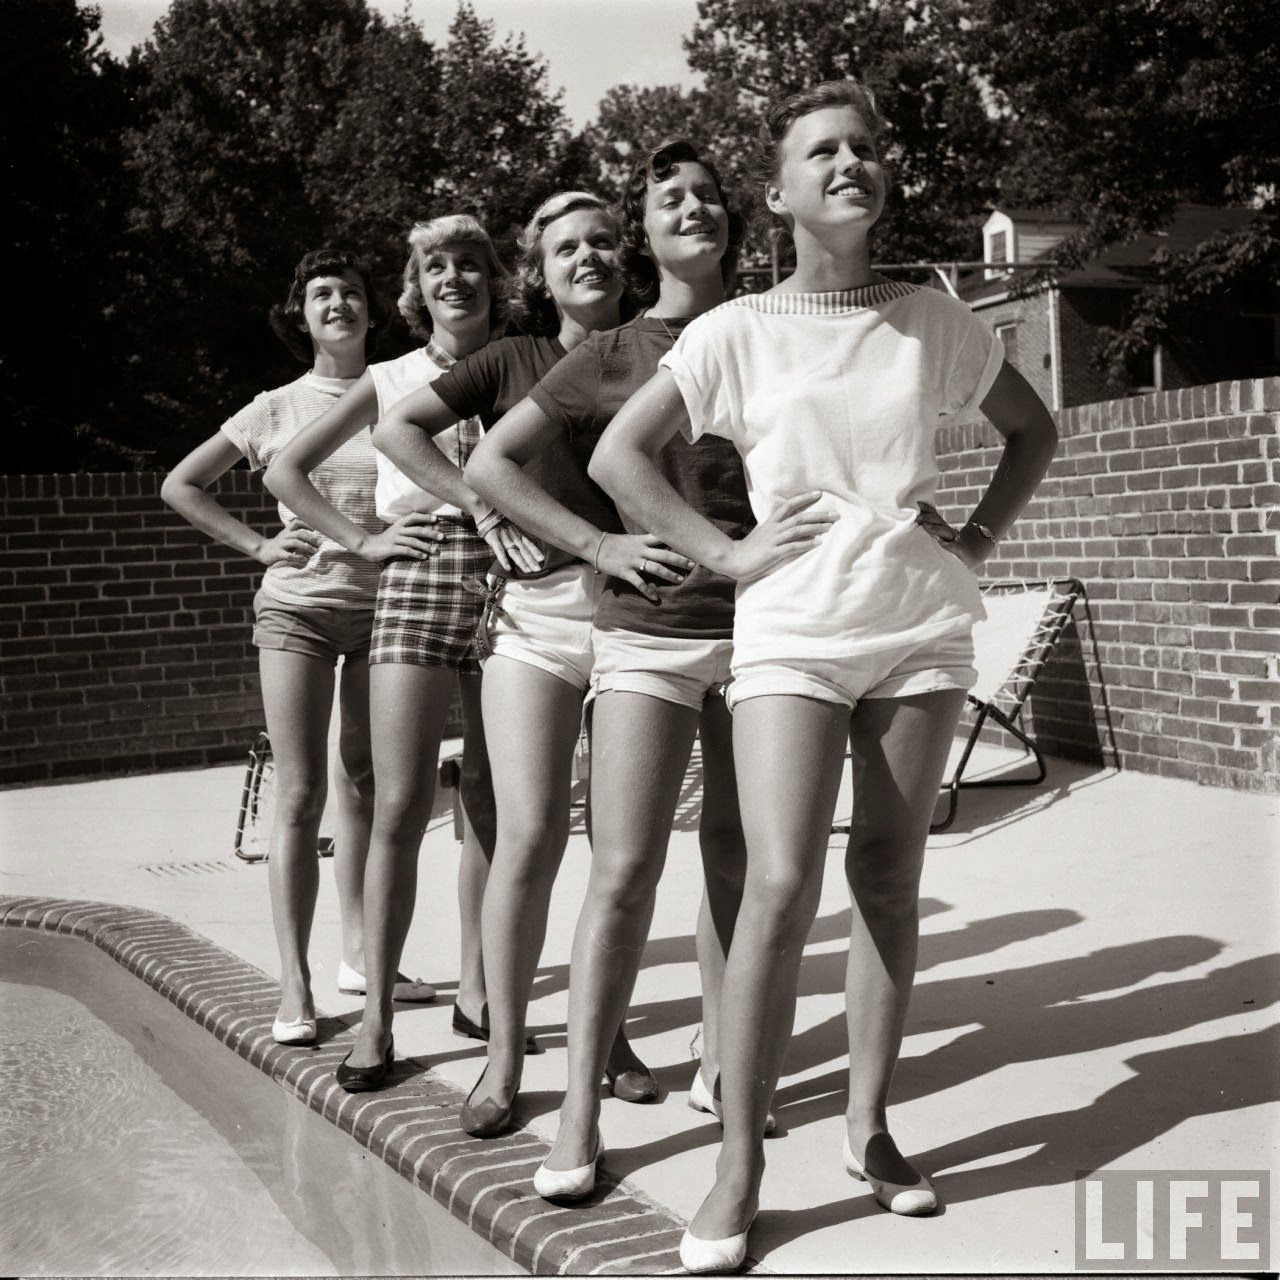 526f98703f2 Short Shorts in the 1950s | Vintage Women's Fashion | Fifties ...